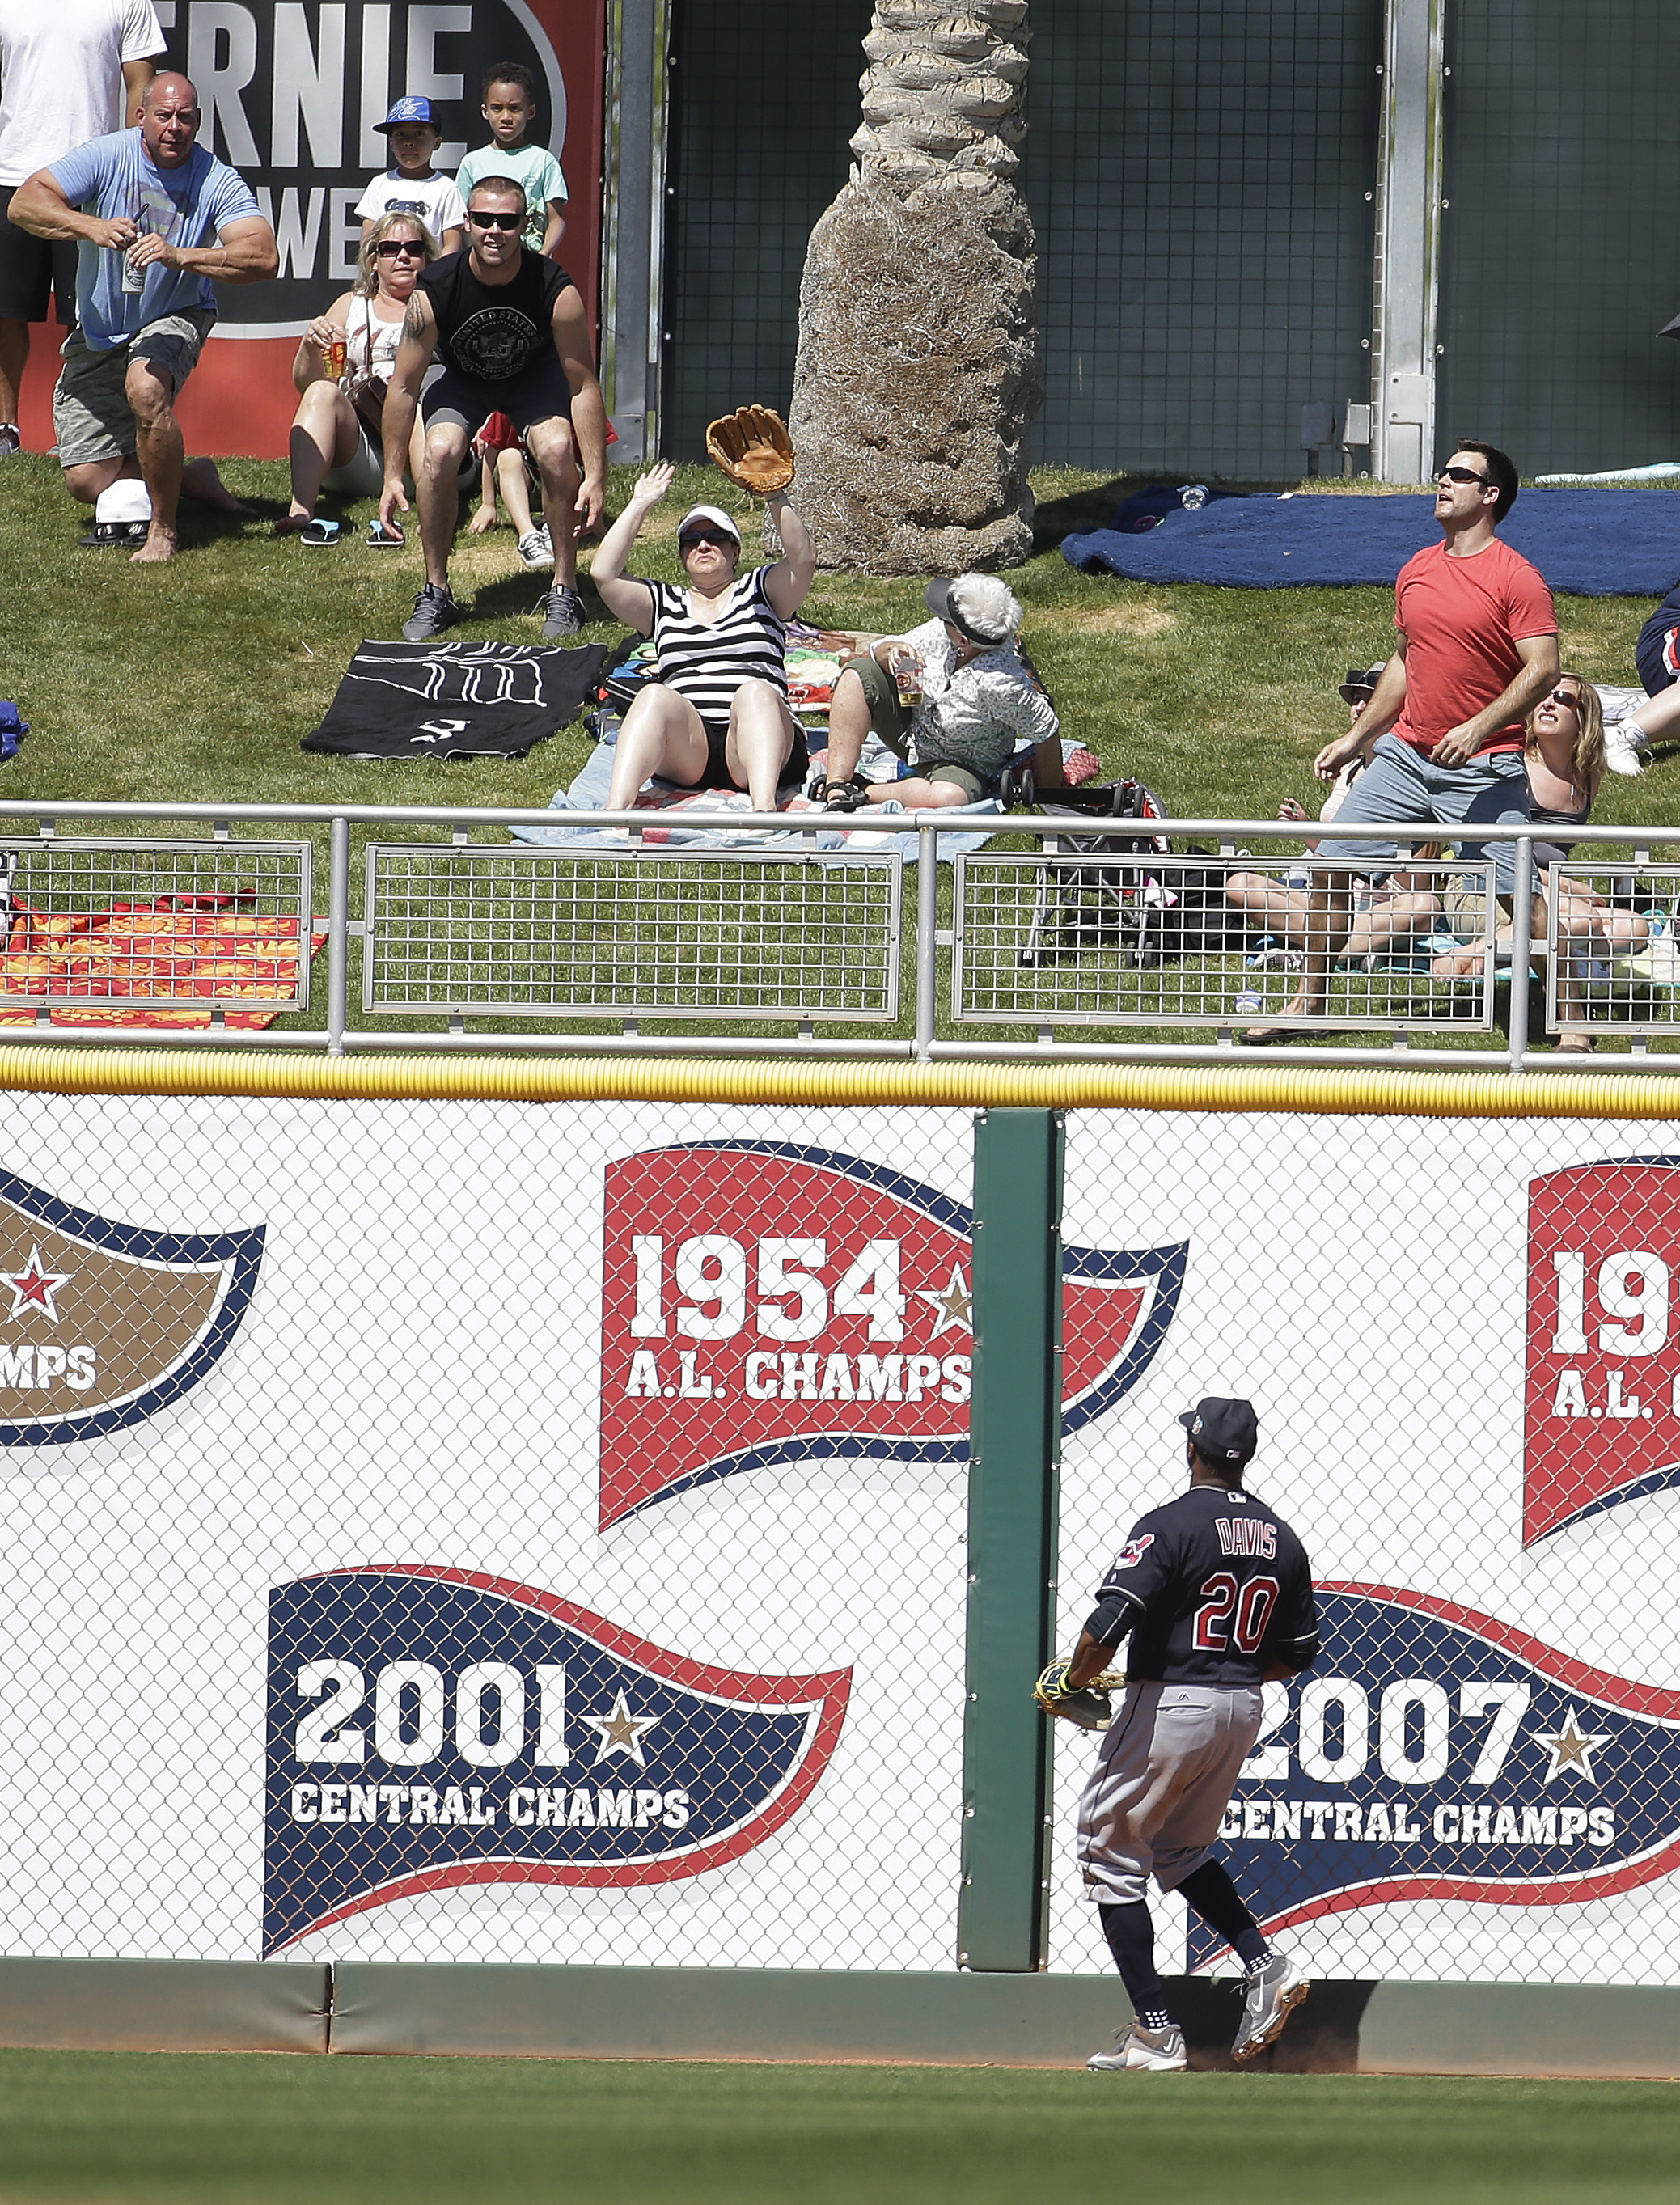 Cleveland Indians' Rajai Davis watches a two-run home run by Cincinnati Reds' Devin Mesoraco during the first inning of a spring training baseball game on Thursday, March 17, 2016, in Goodyear, Ariz. (AP Photo/Darron Cummings)